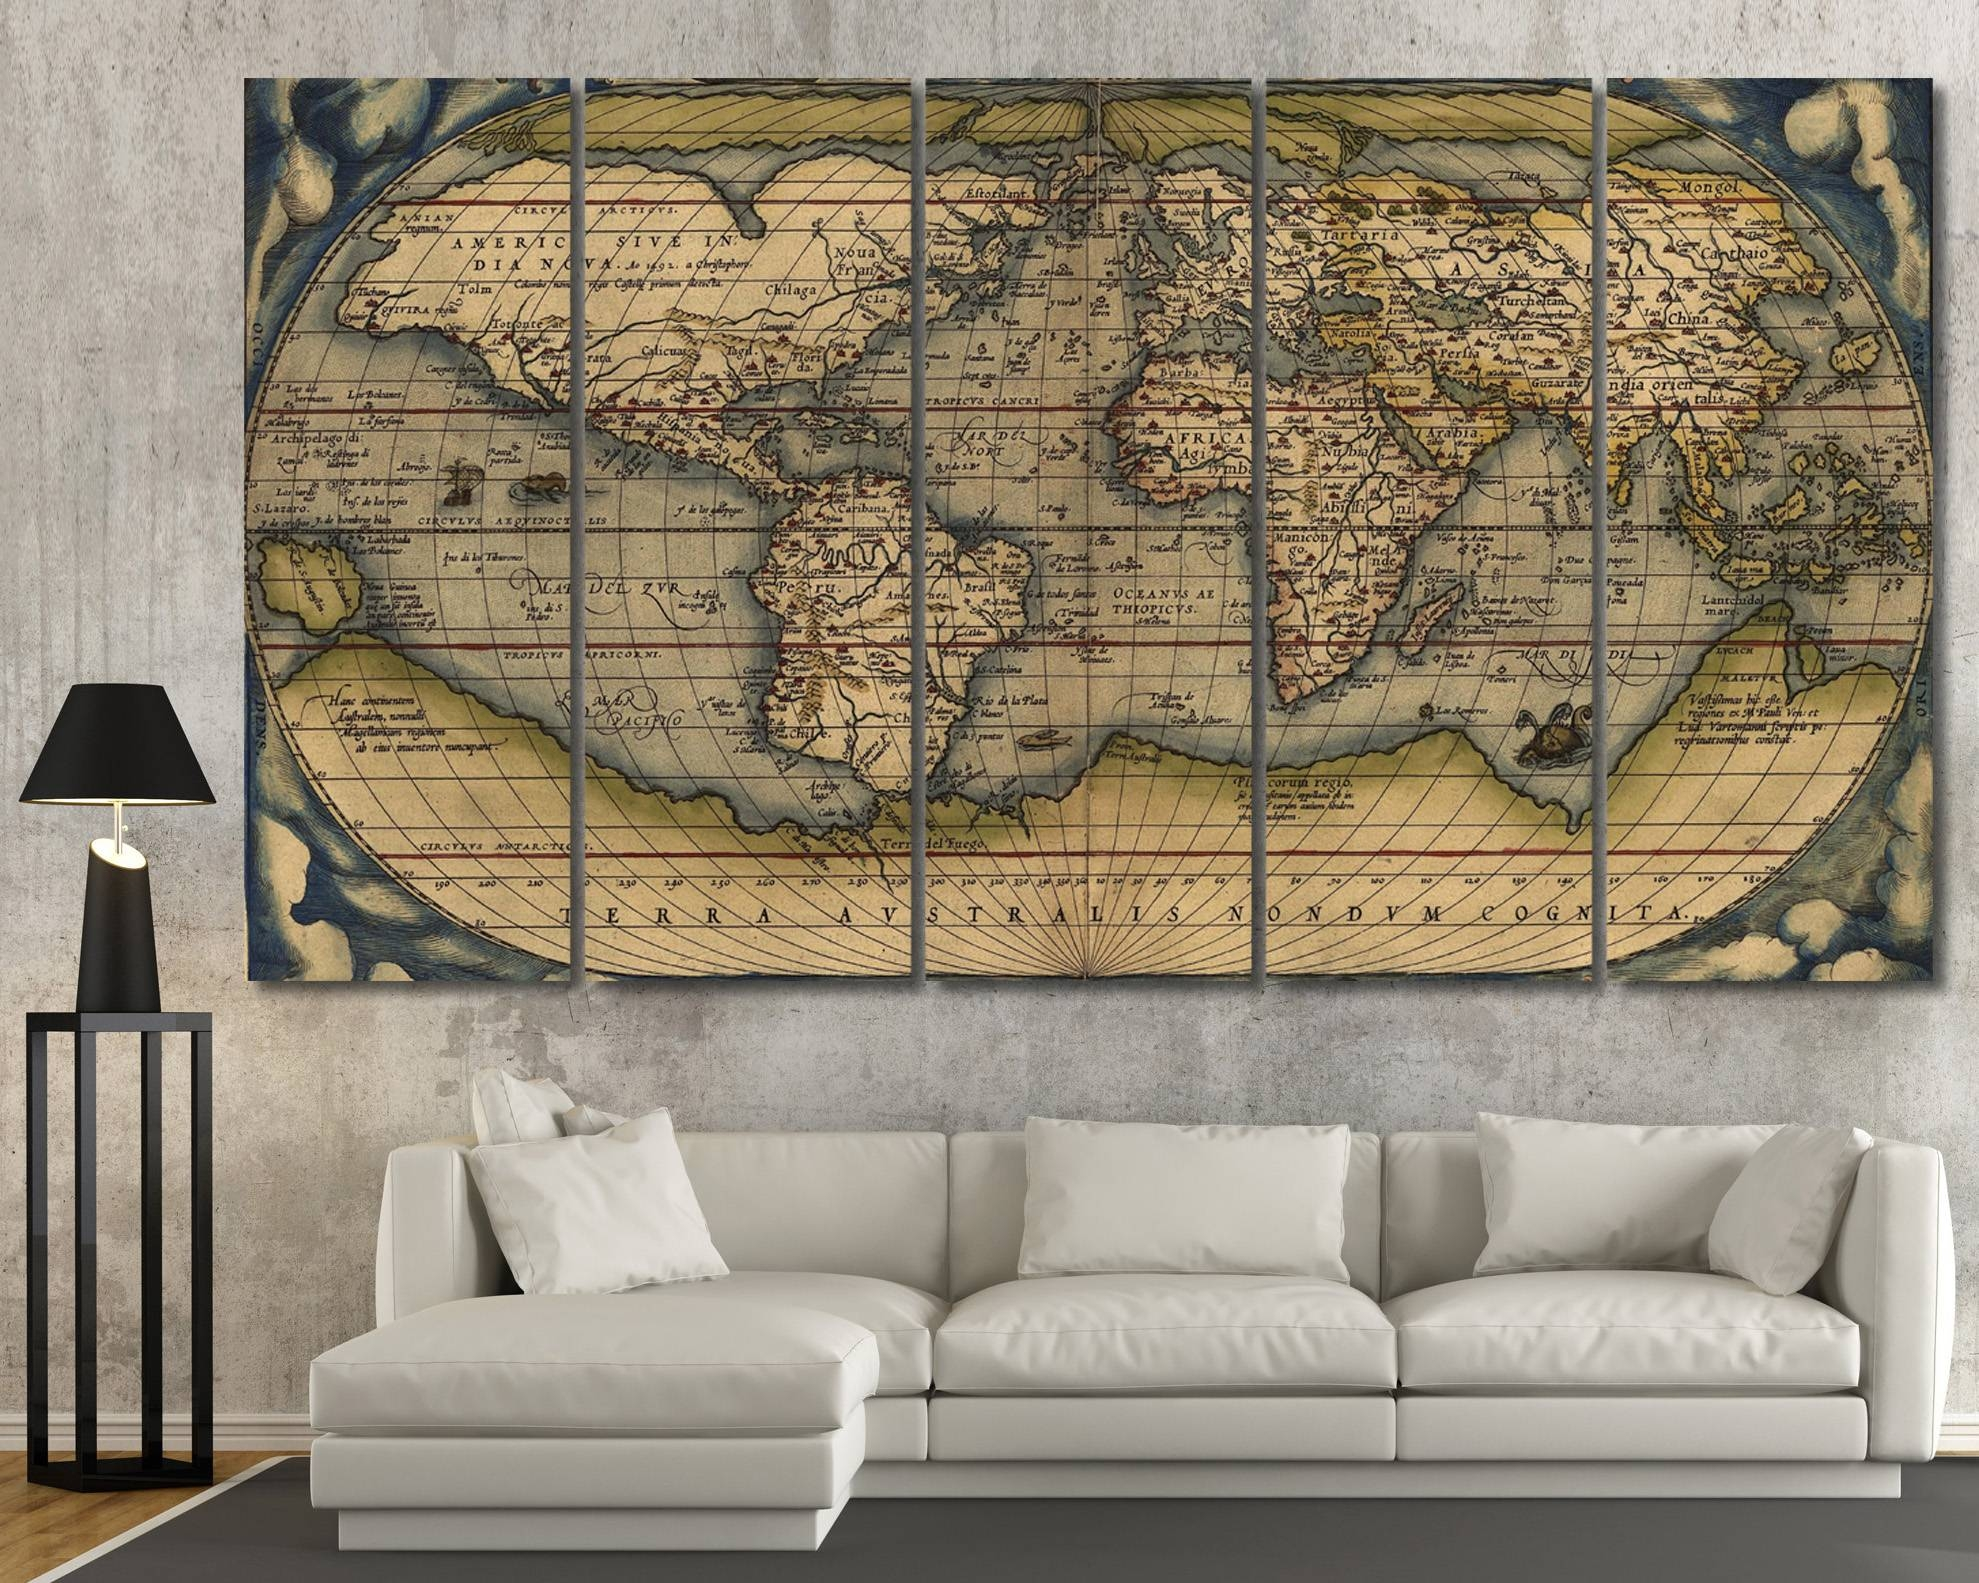 Large Vintage Wall Art Old World Map At Texelprintart Throughout Recent Maps For Wall Art (View 8 of 20)